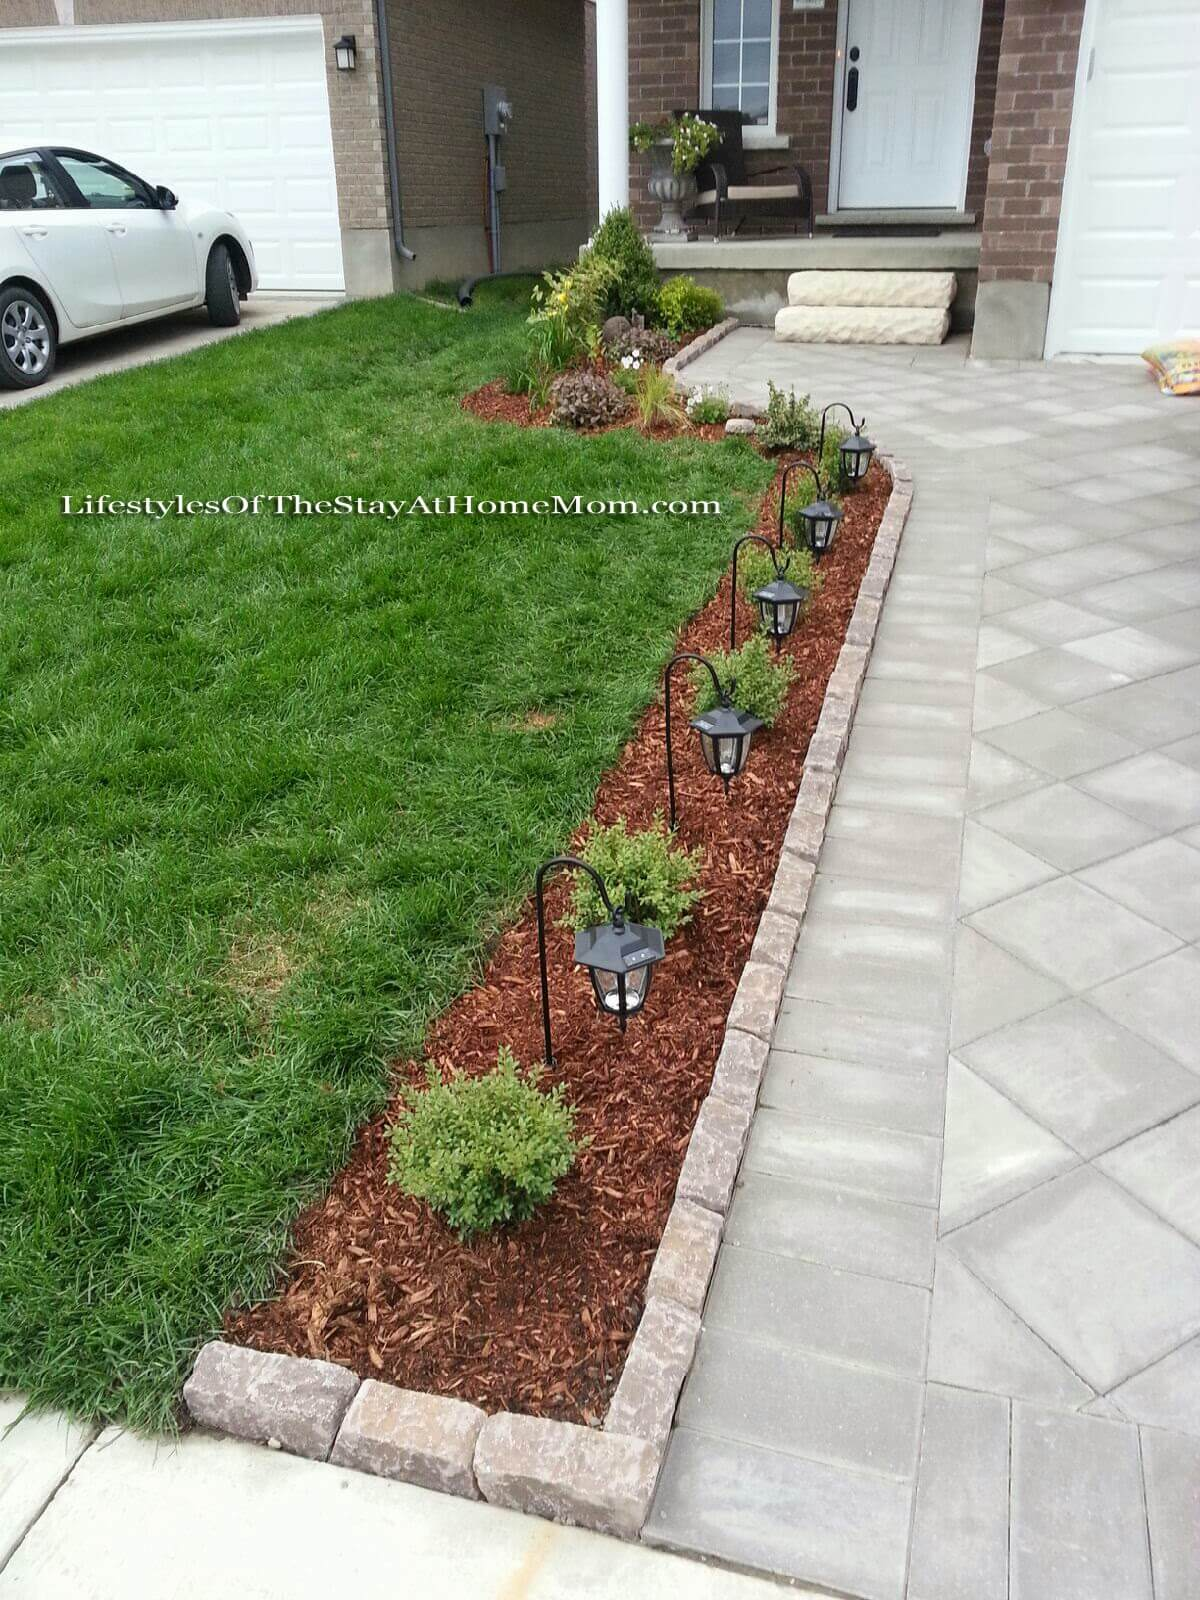 50 Best Front Yard Landscaping Ideas and Garden Designs ... on Landscape Front Yard Ideas id=49399